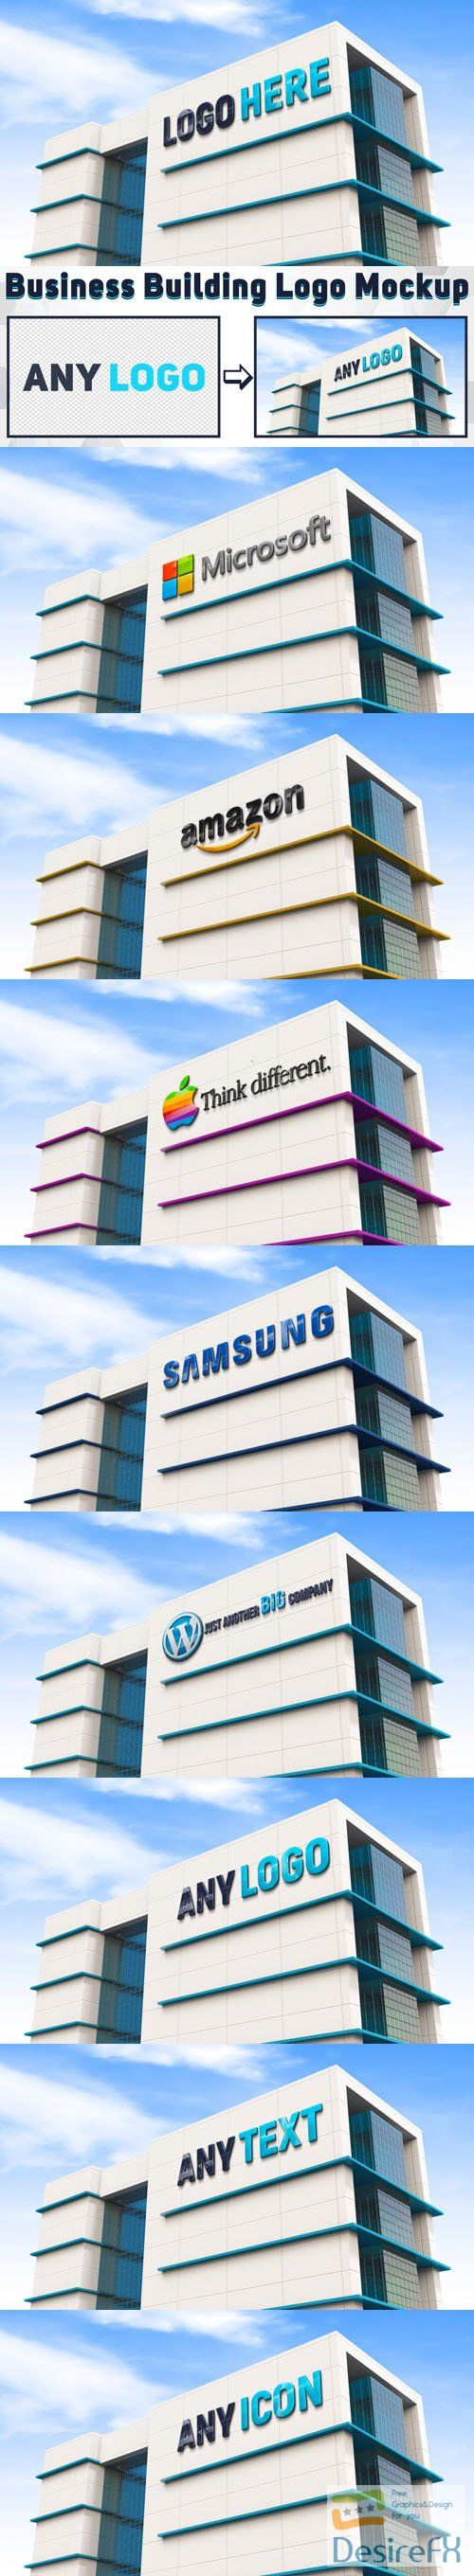 Building Logo With Realistic Quality Render - PSD Mockup Template